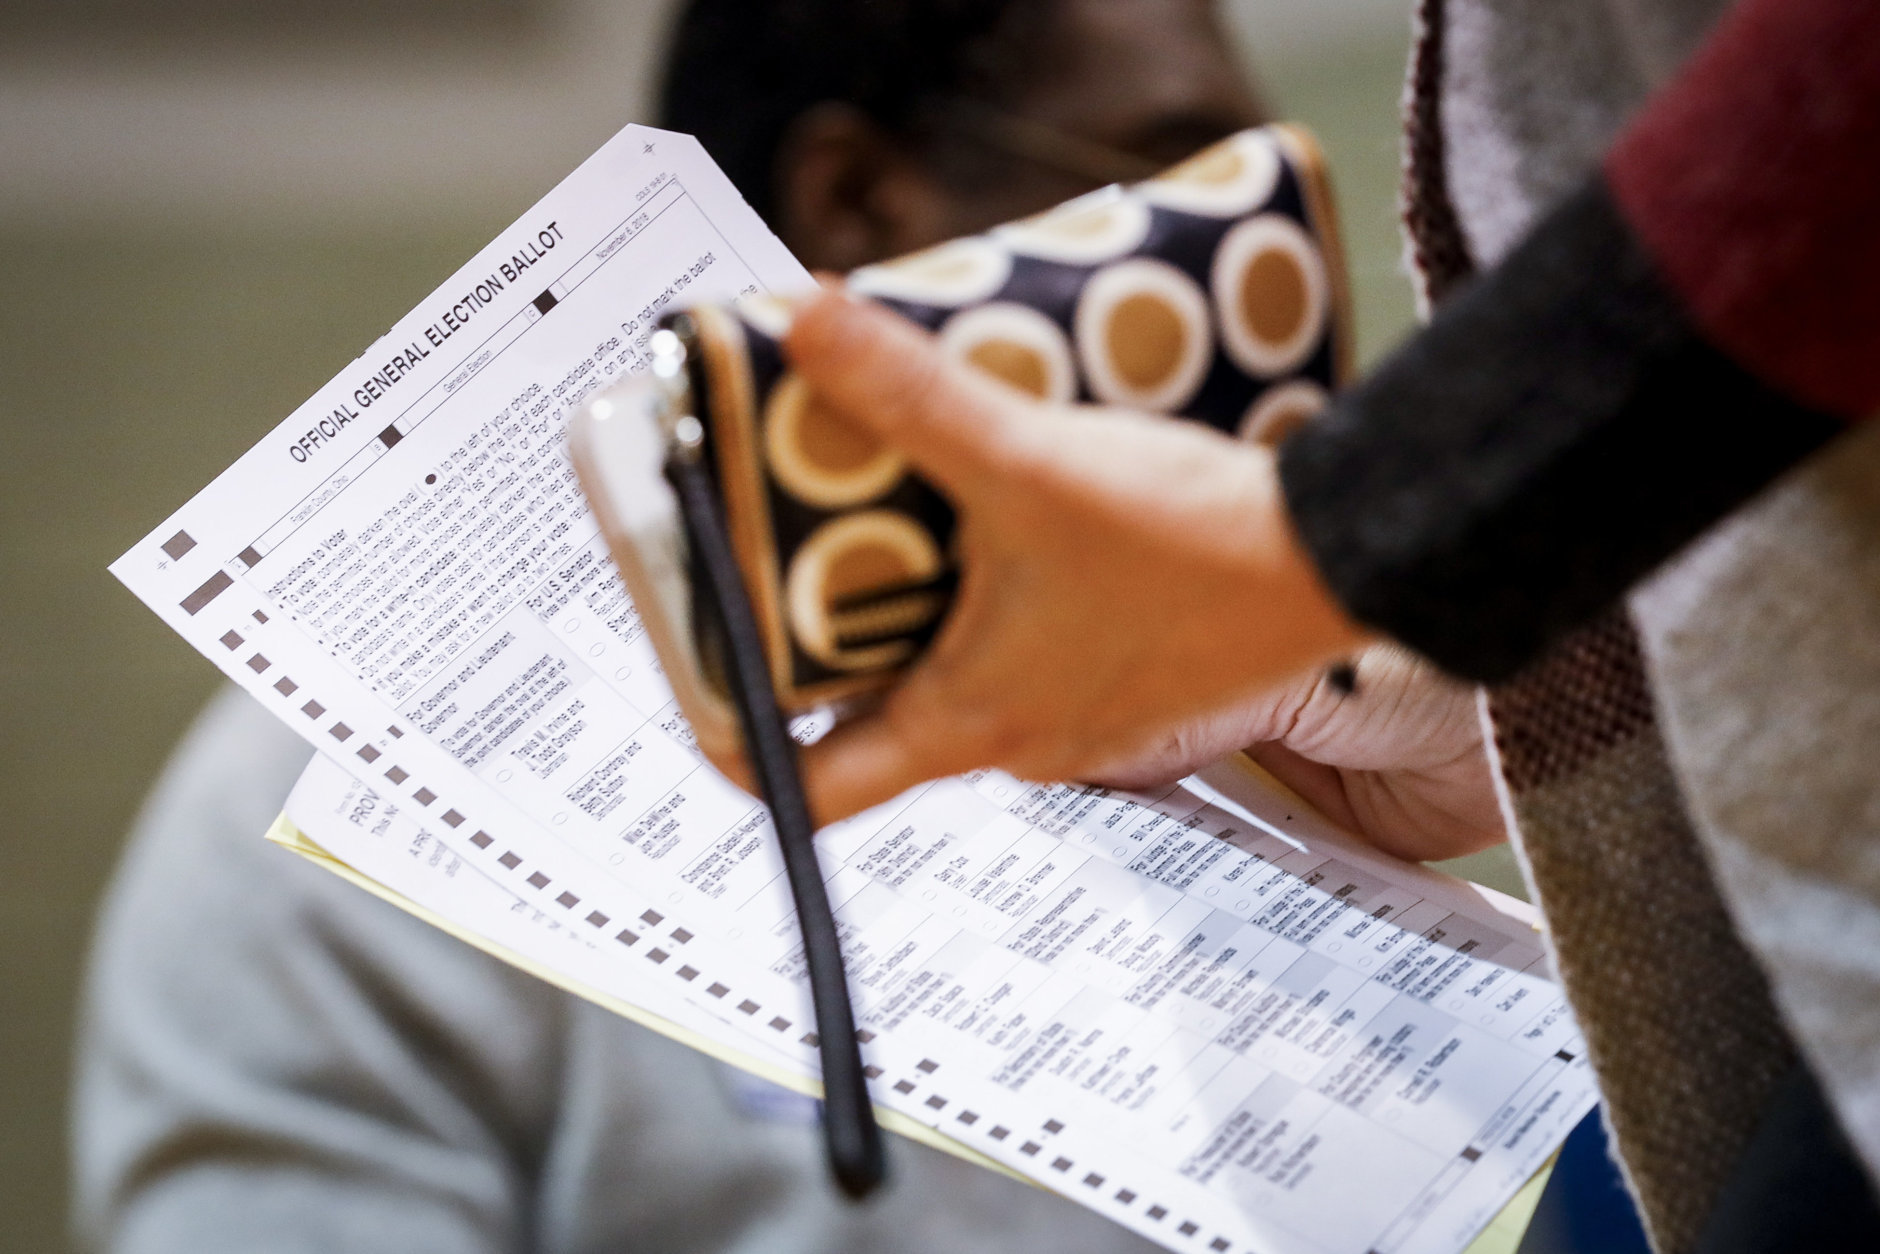 A voter prepares to fill out her ballot at the Whetstone Community Center polling location, Tuesday, Nov. 6, 2018, in Columbus, Ohio. Across the country, voters headed to the polls Tuesday in one of the most high-profile midterm elections in years. (AP Photo/John Minchillo)